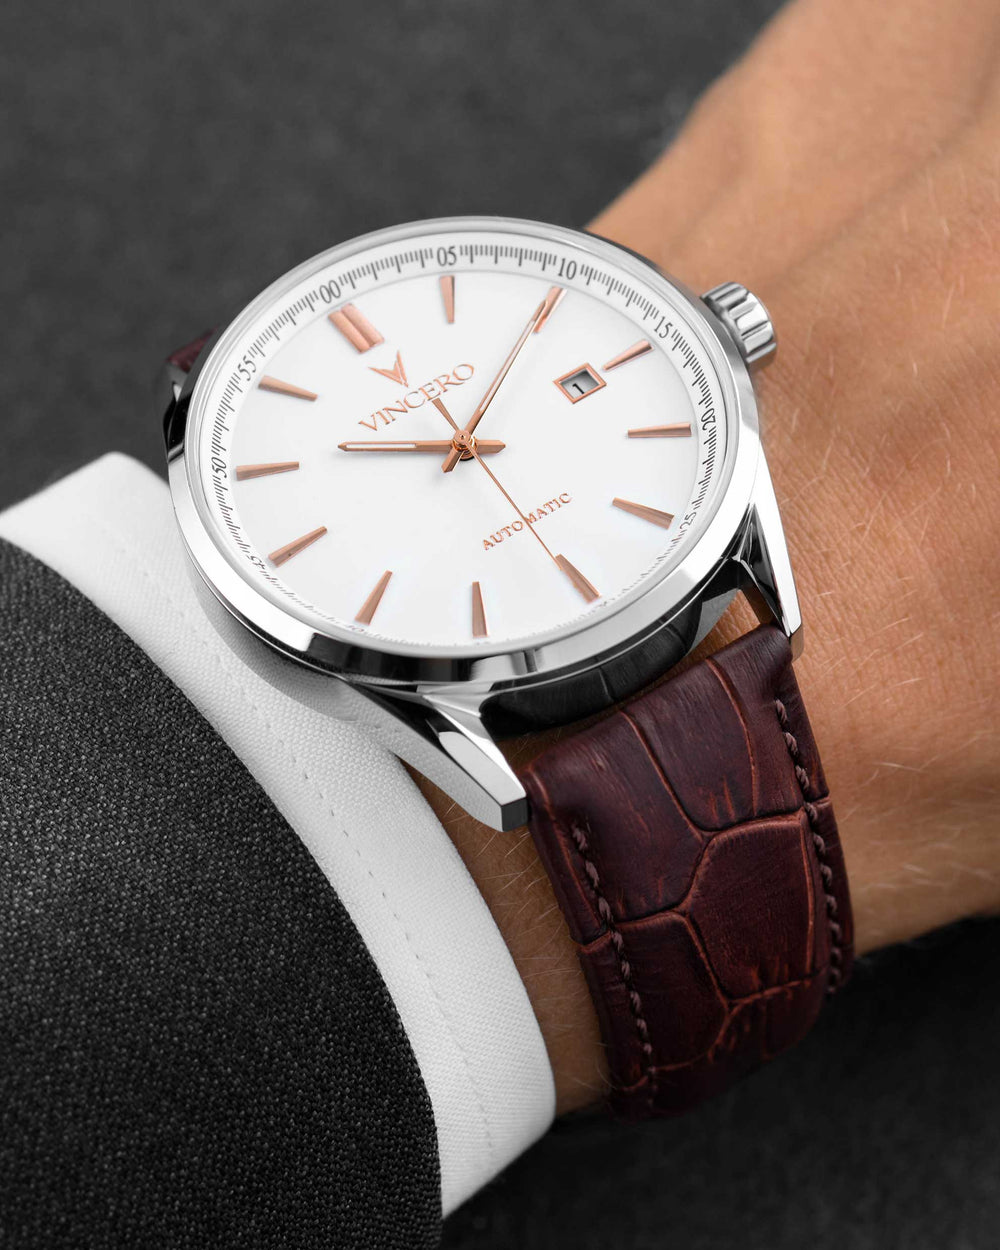 Men's Luxury Kairos Automatic Watch Mocha Brown Croc Italian Leather Strap Band White Watch Face Silver Case Clasp Rose Gold Accents